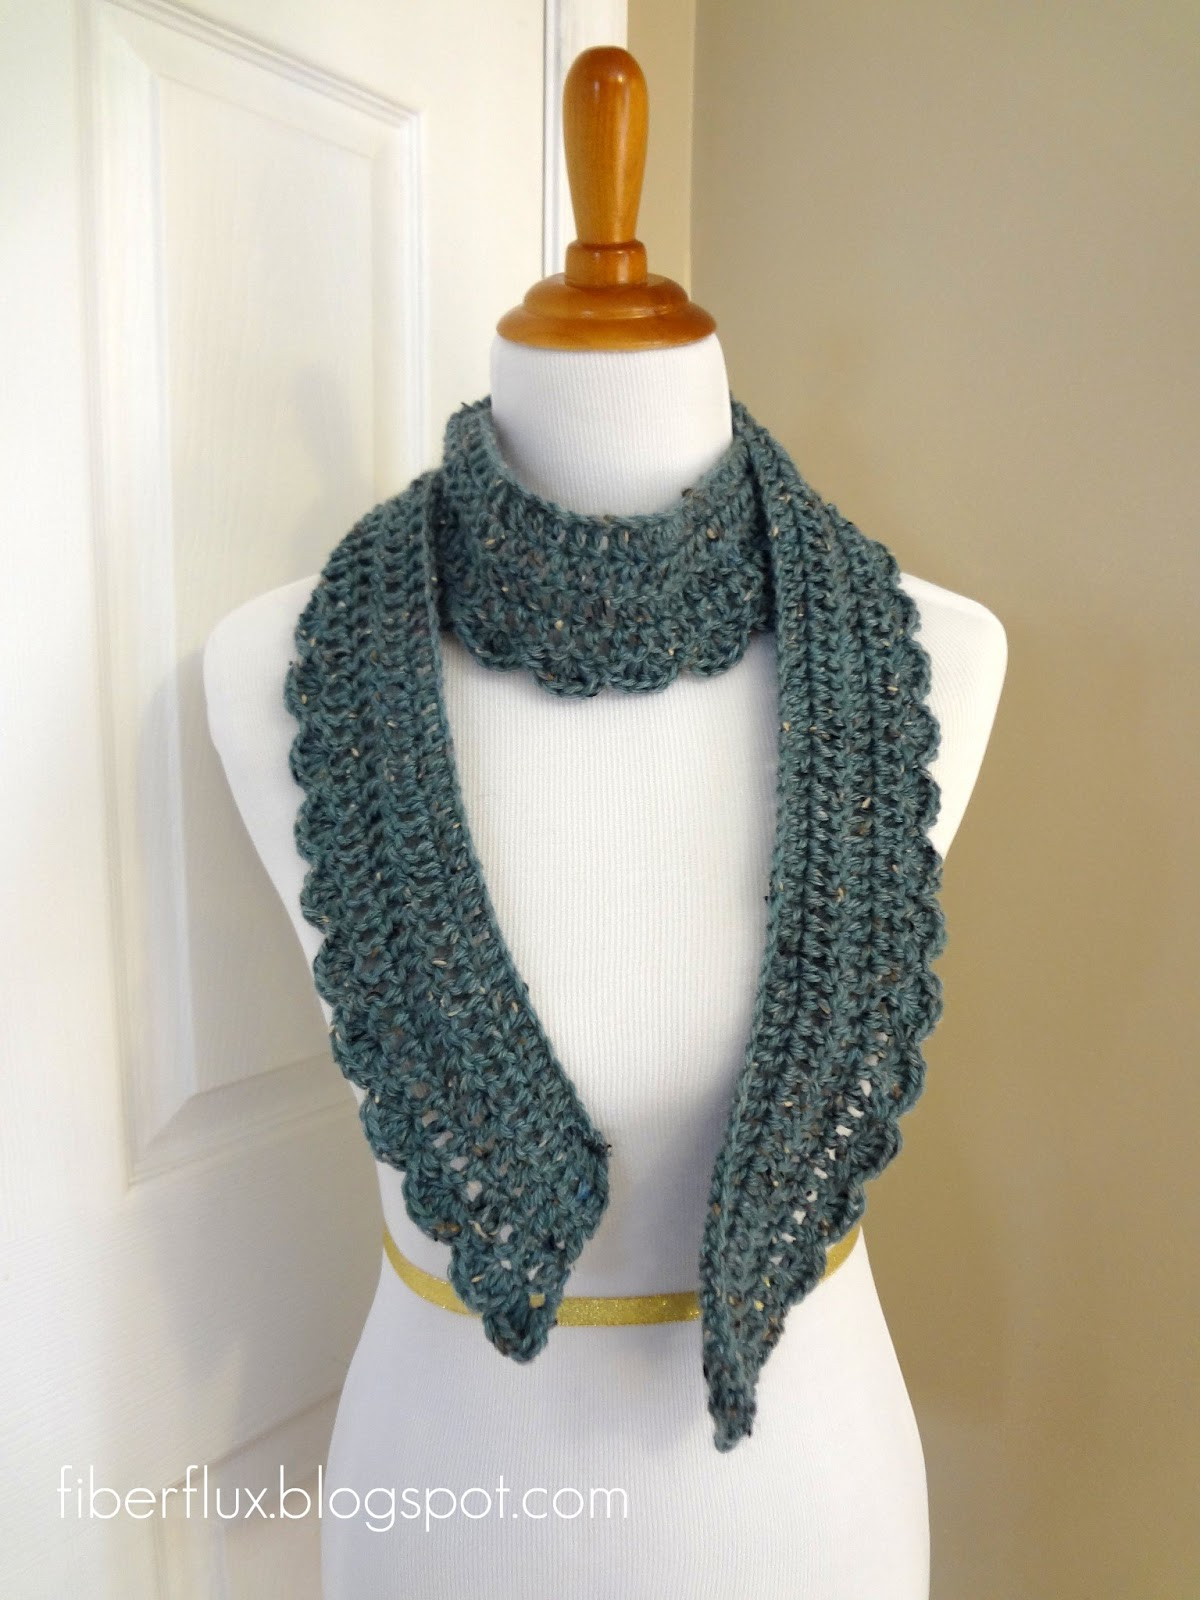 Free Crochet Scarf Patterns With Pictures : Fiber Flux: Free Crochet Pattern...Ocean Air Scarf